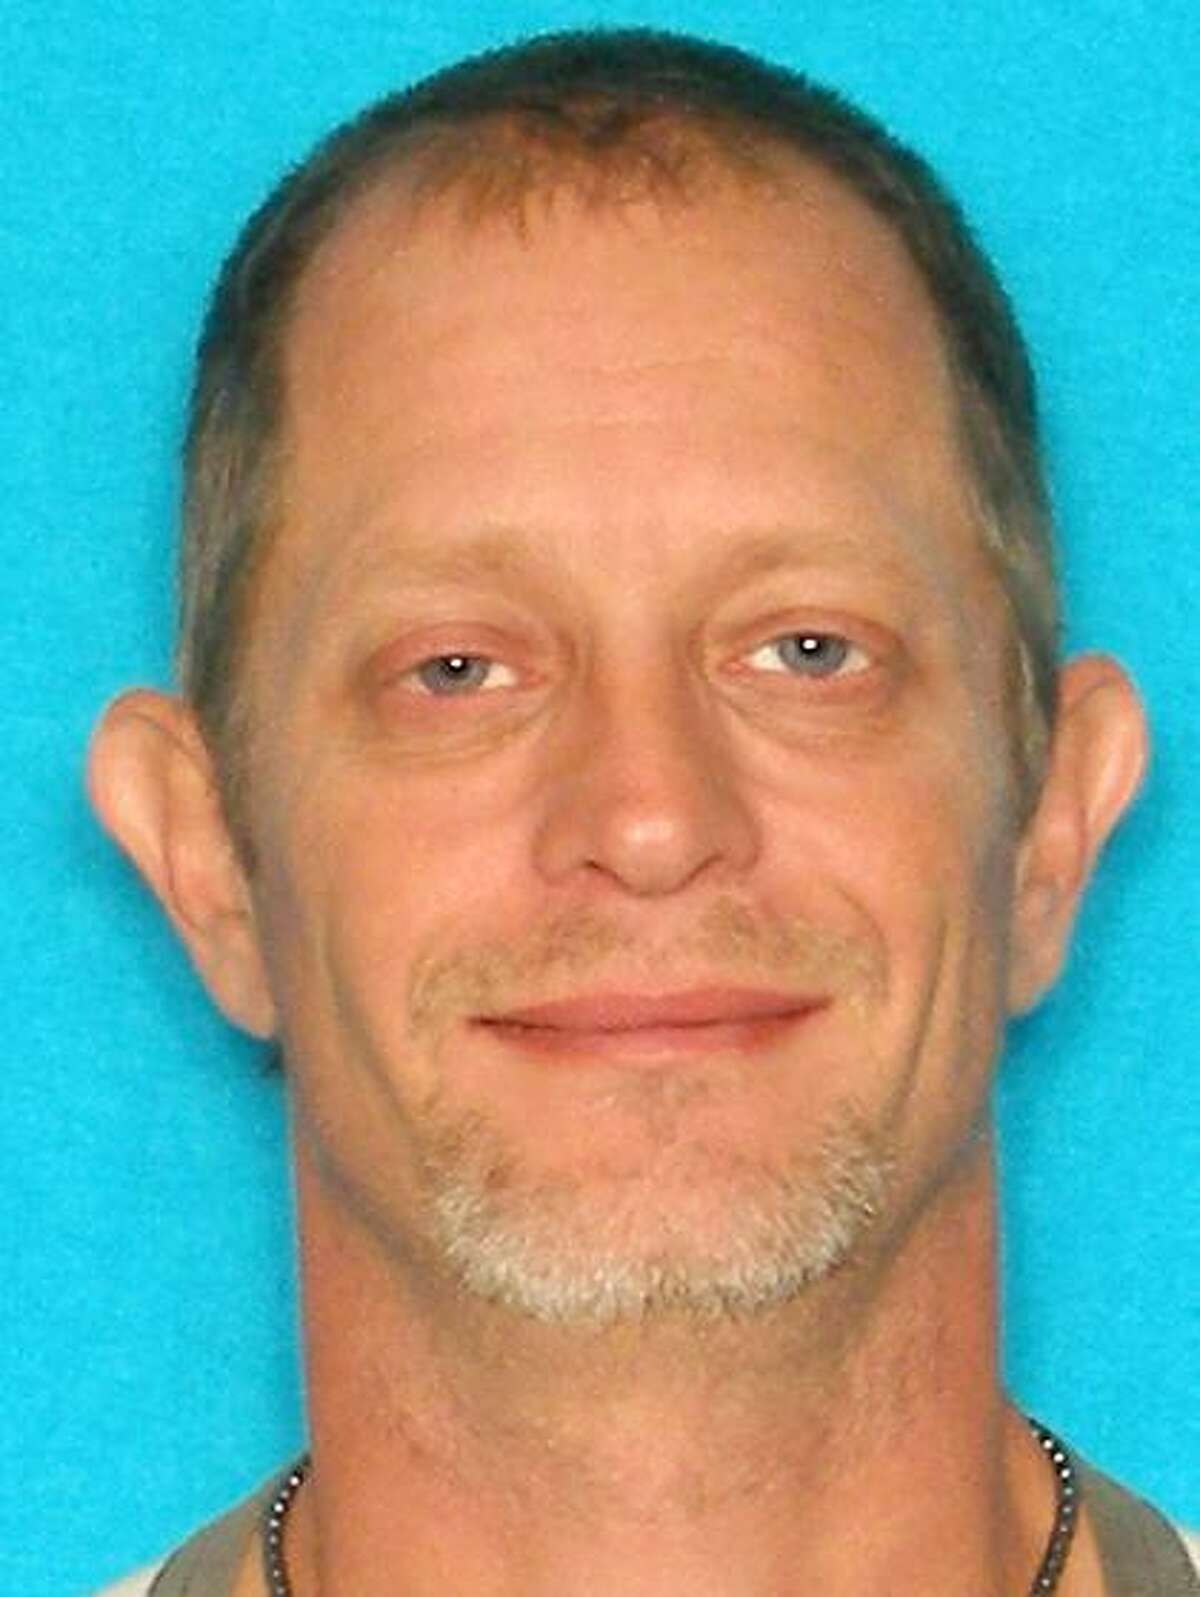 Russell Scott Cole, 44, of Sour Lake, is wanted on a charge of felony theft.